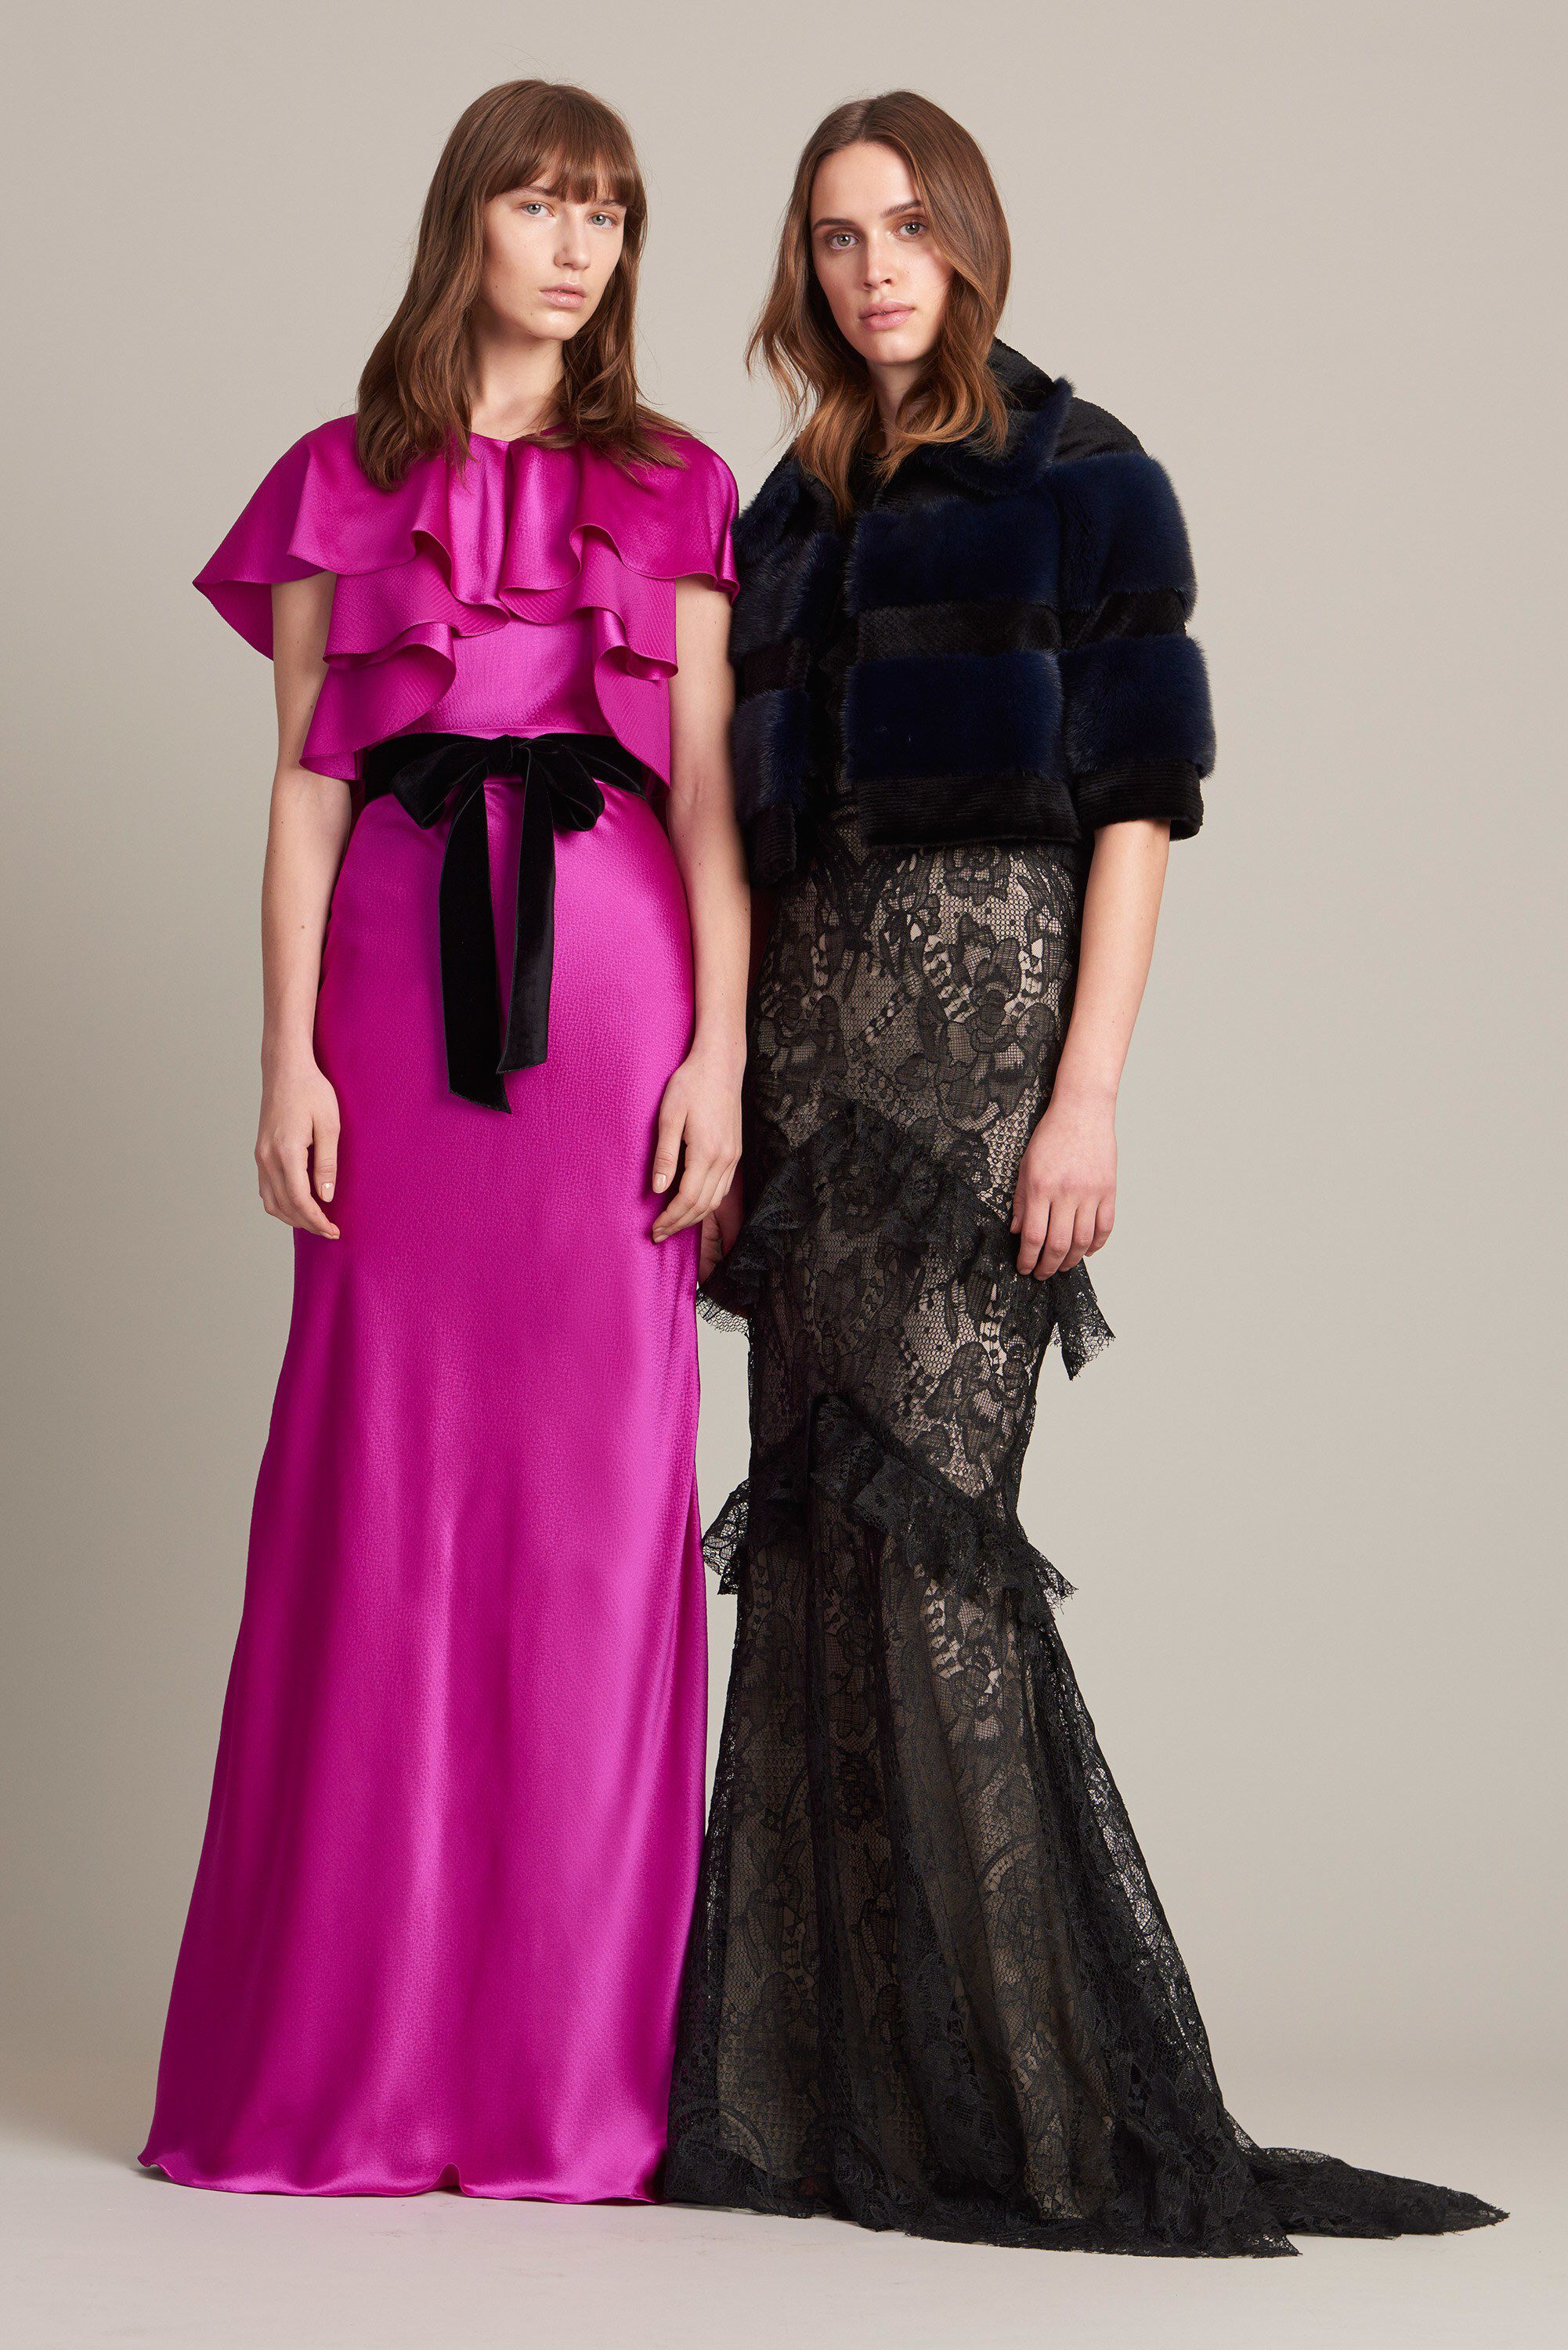 Monique Lhuillier Pre-Fall 2017 Fashion Show | Coser y Vestiditos